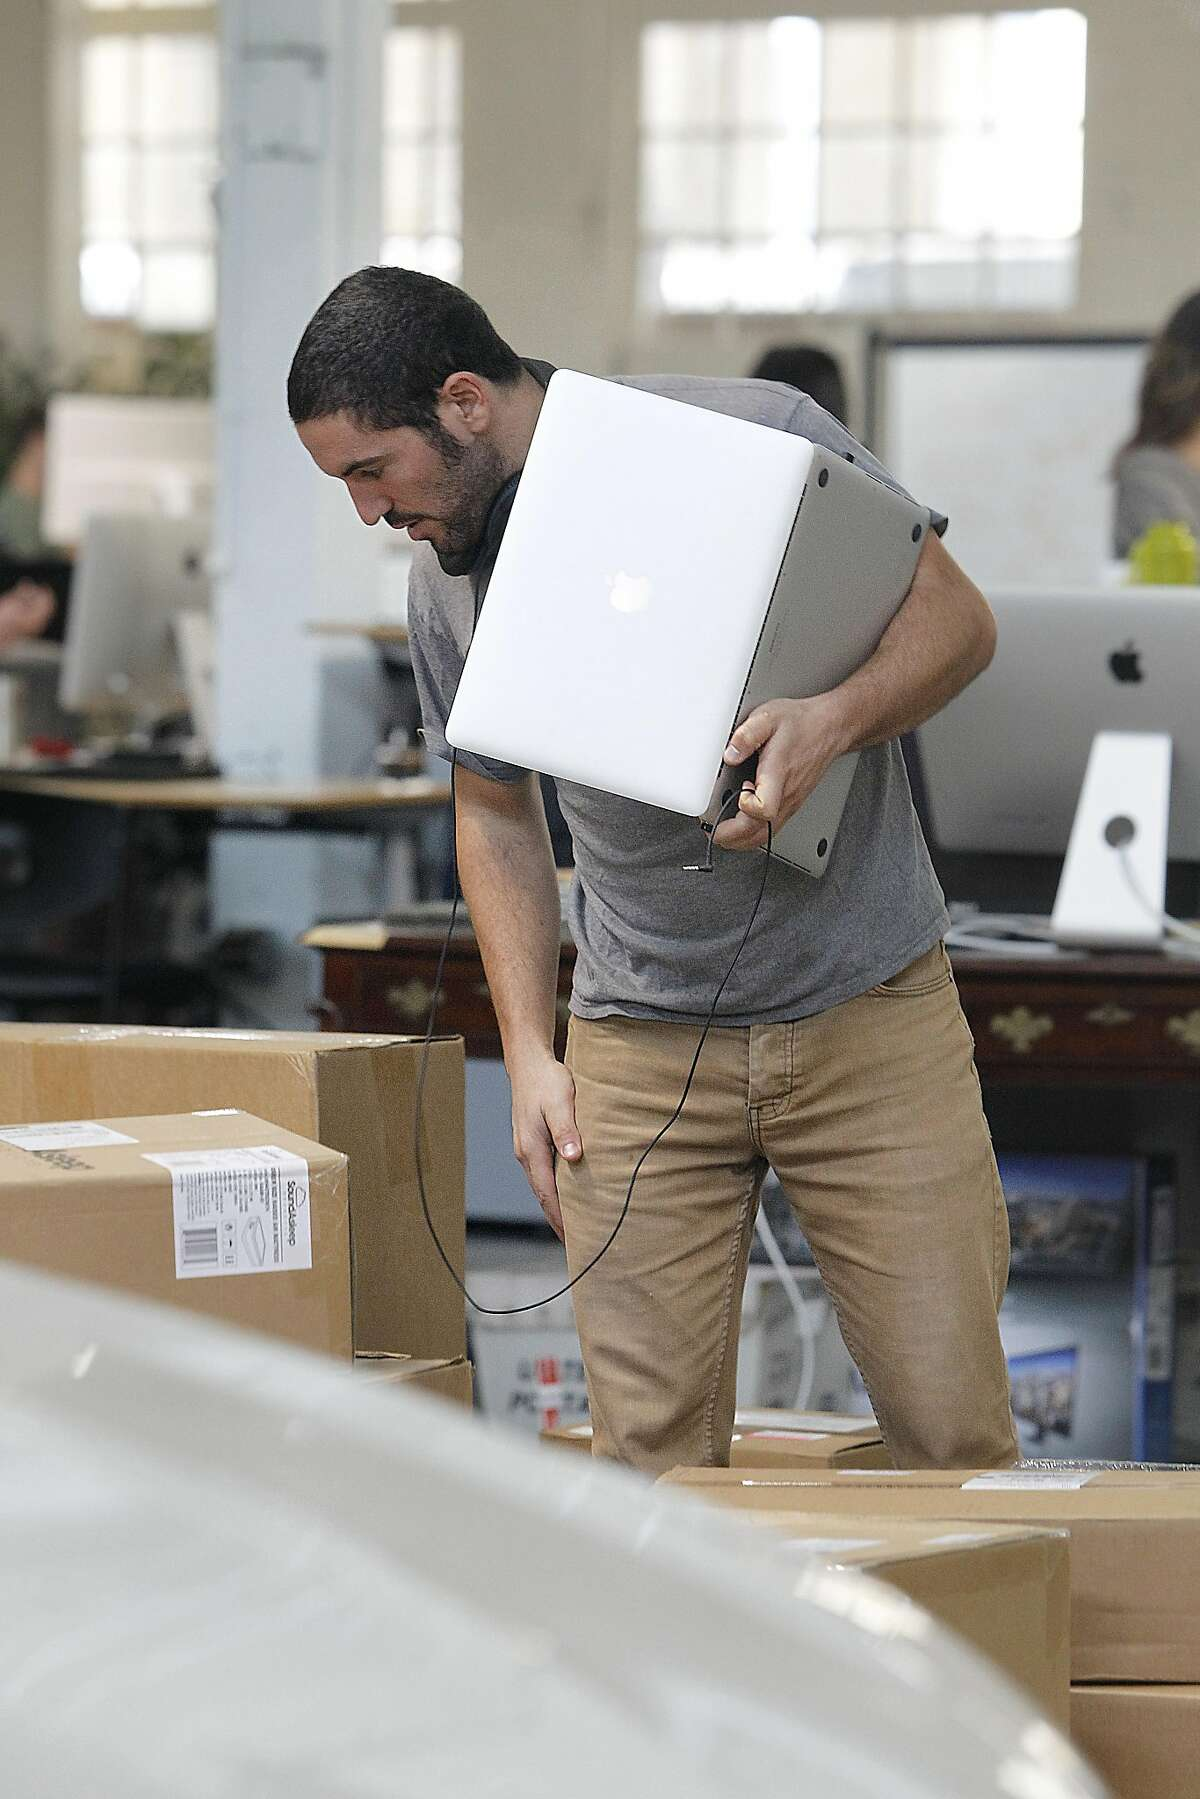 Electrical hardware engineer Ronen Sarig works at Otto, a self-driving truck startup, on Tuesday, August 23, 2016, in San Francisco, Calif.